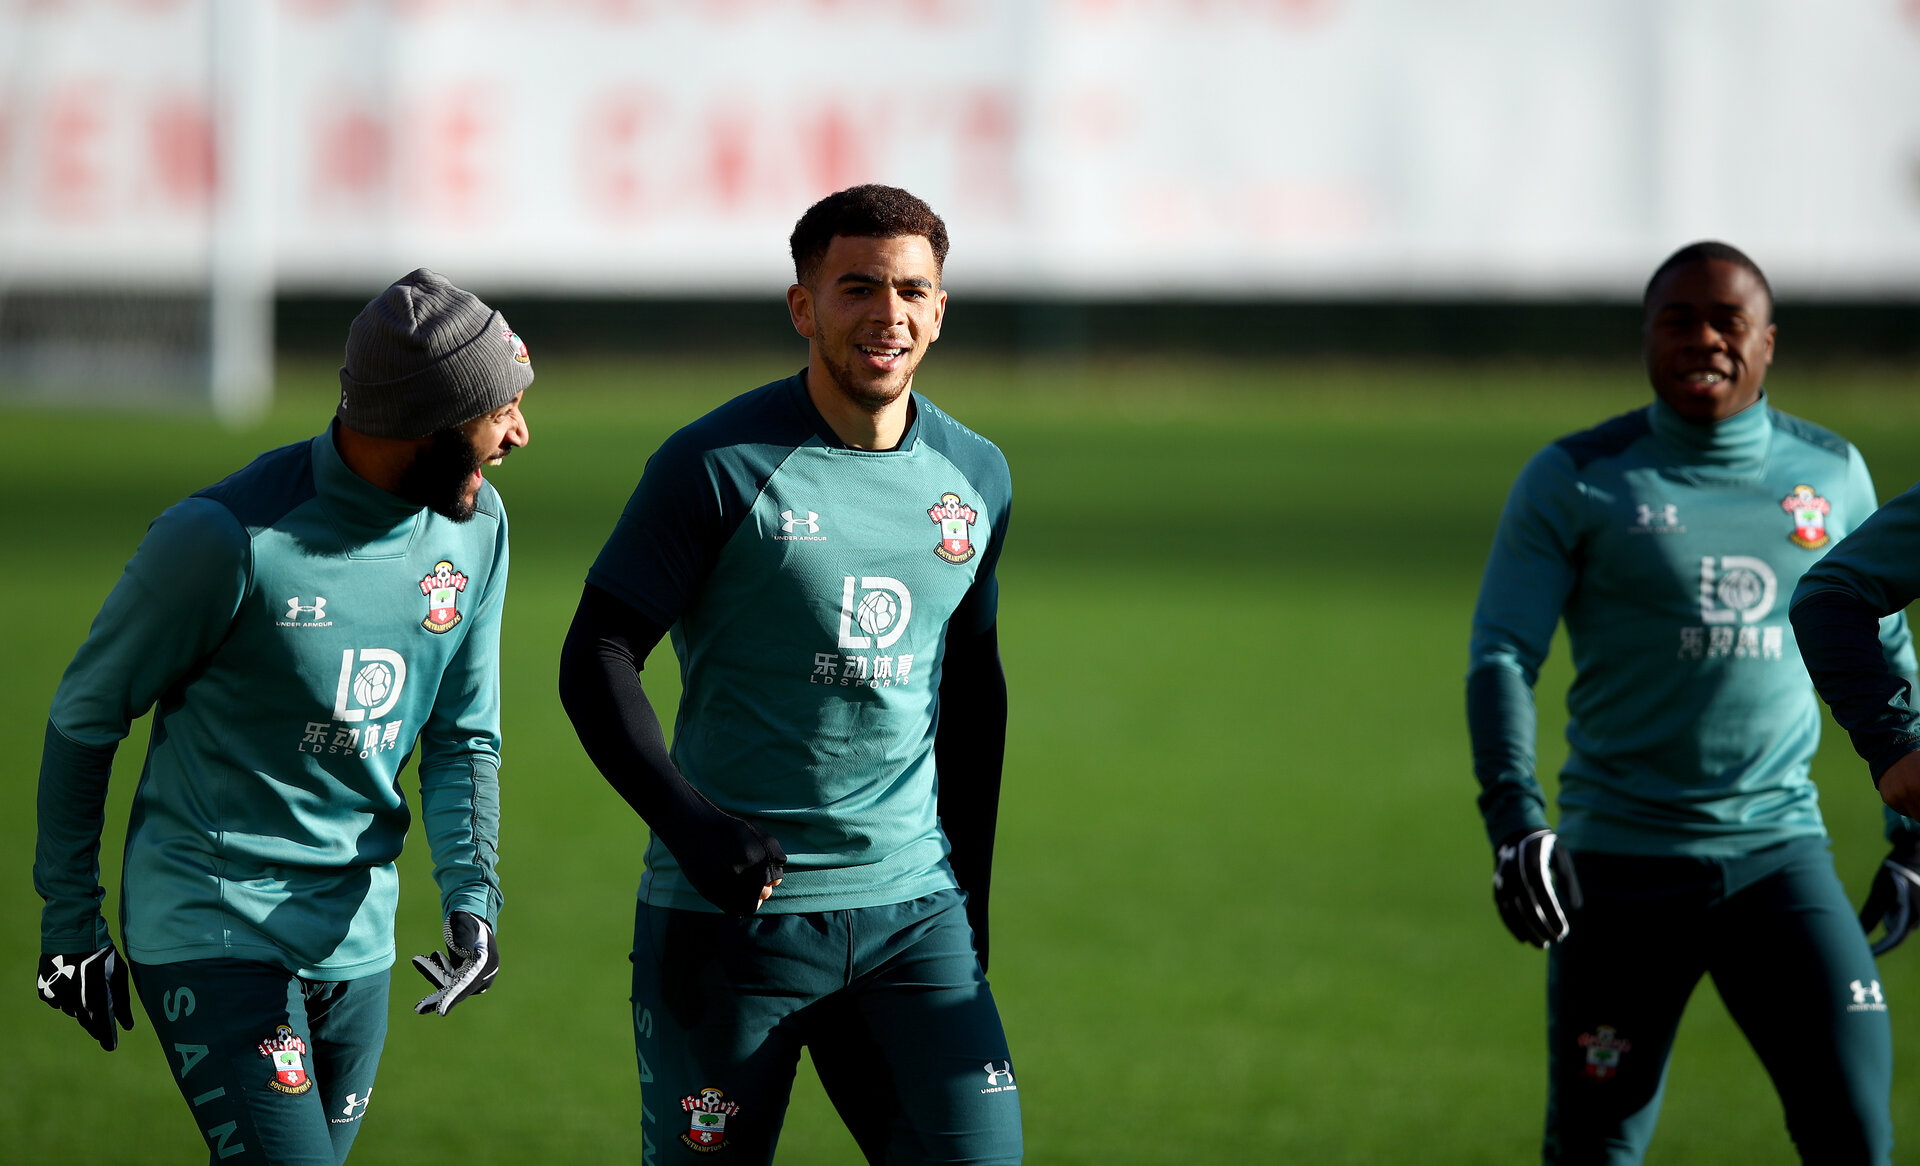 SOUTHAMPTON, ENGLAND - JANUARY 09: Ché Adams during a Southampton FC training session at the Staplewood Campus on January 09, 2020 in Southampton, England. (Photo by Matt Watson/Southampton FC via Getty Images)